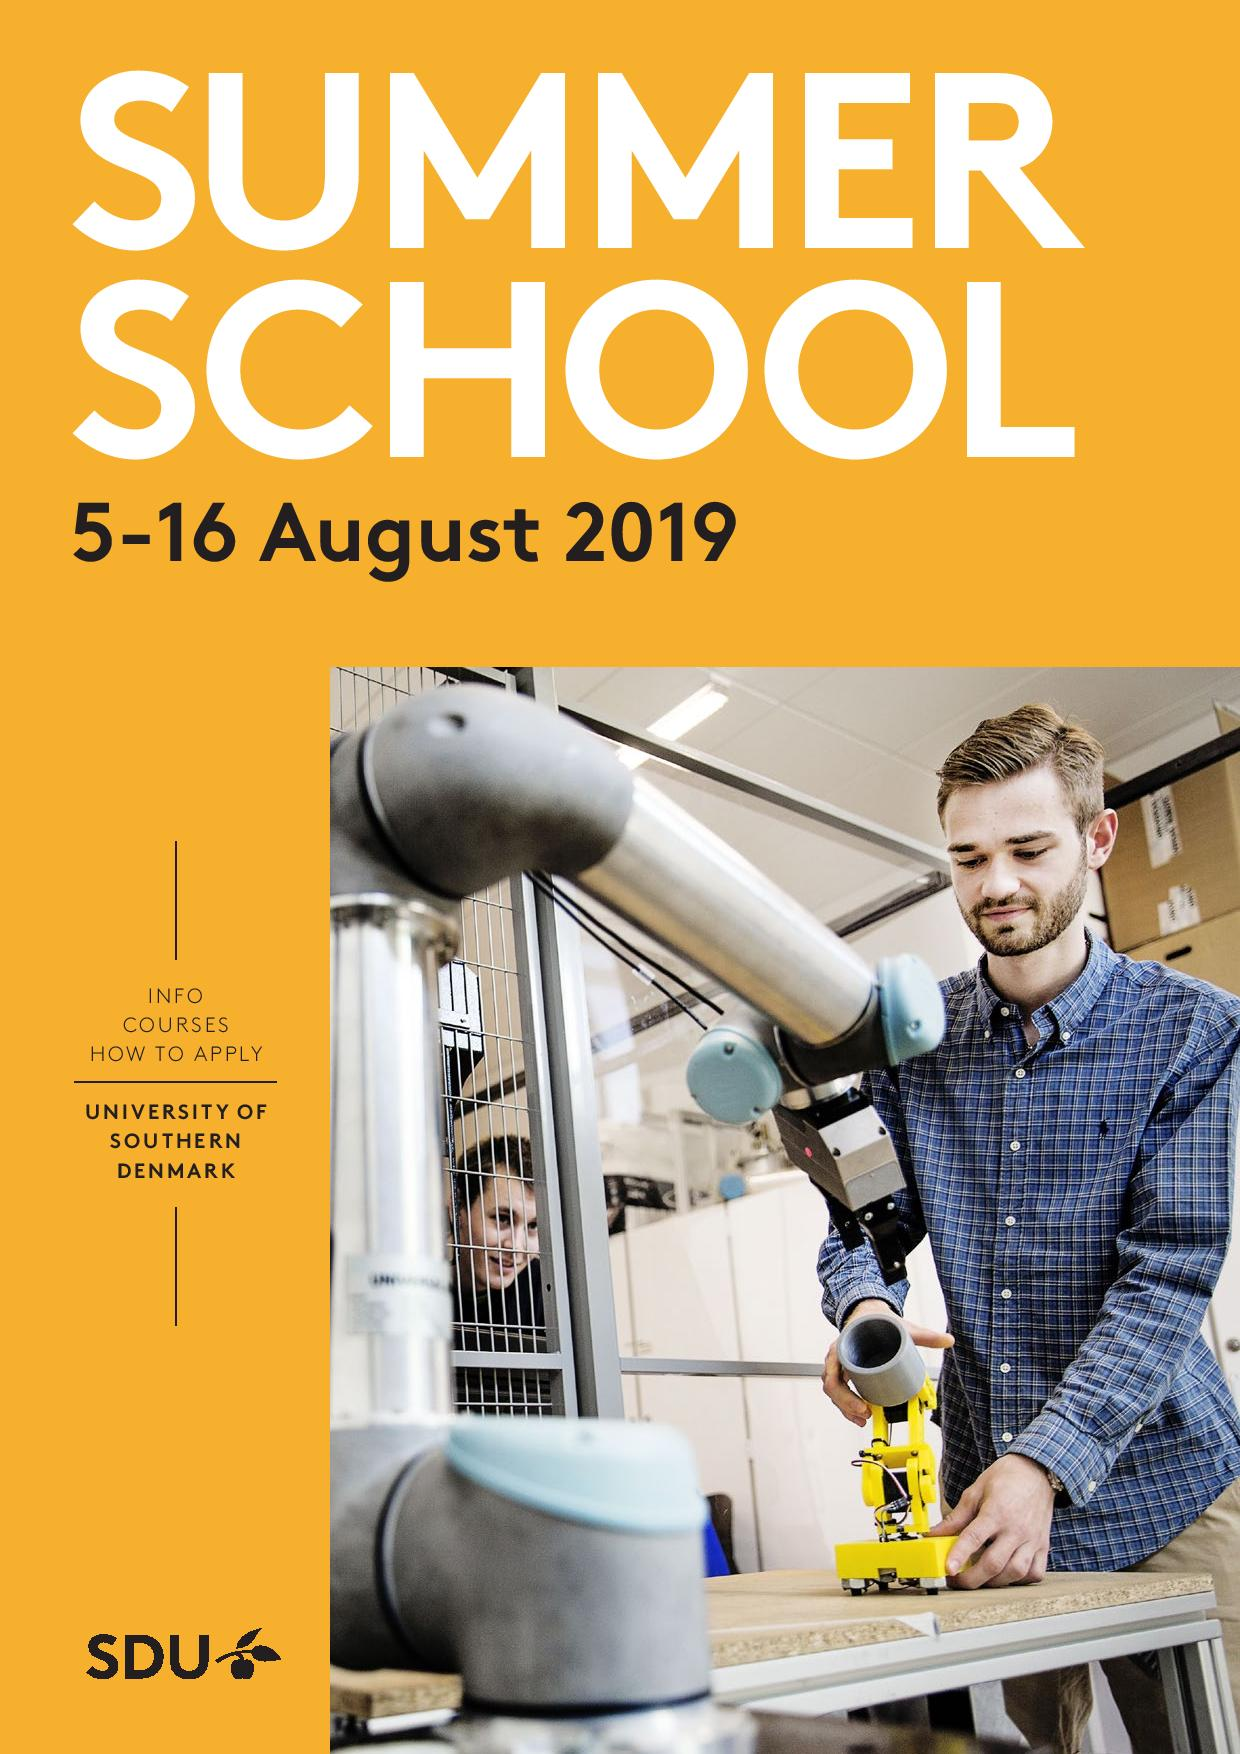 SUMMER SCHOOL AT THE UNIVERSITY OF SOUTHERN DENMARK